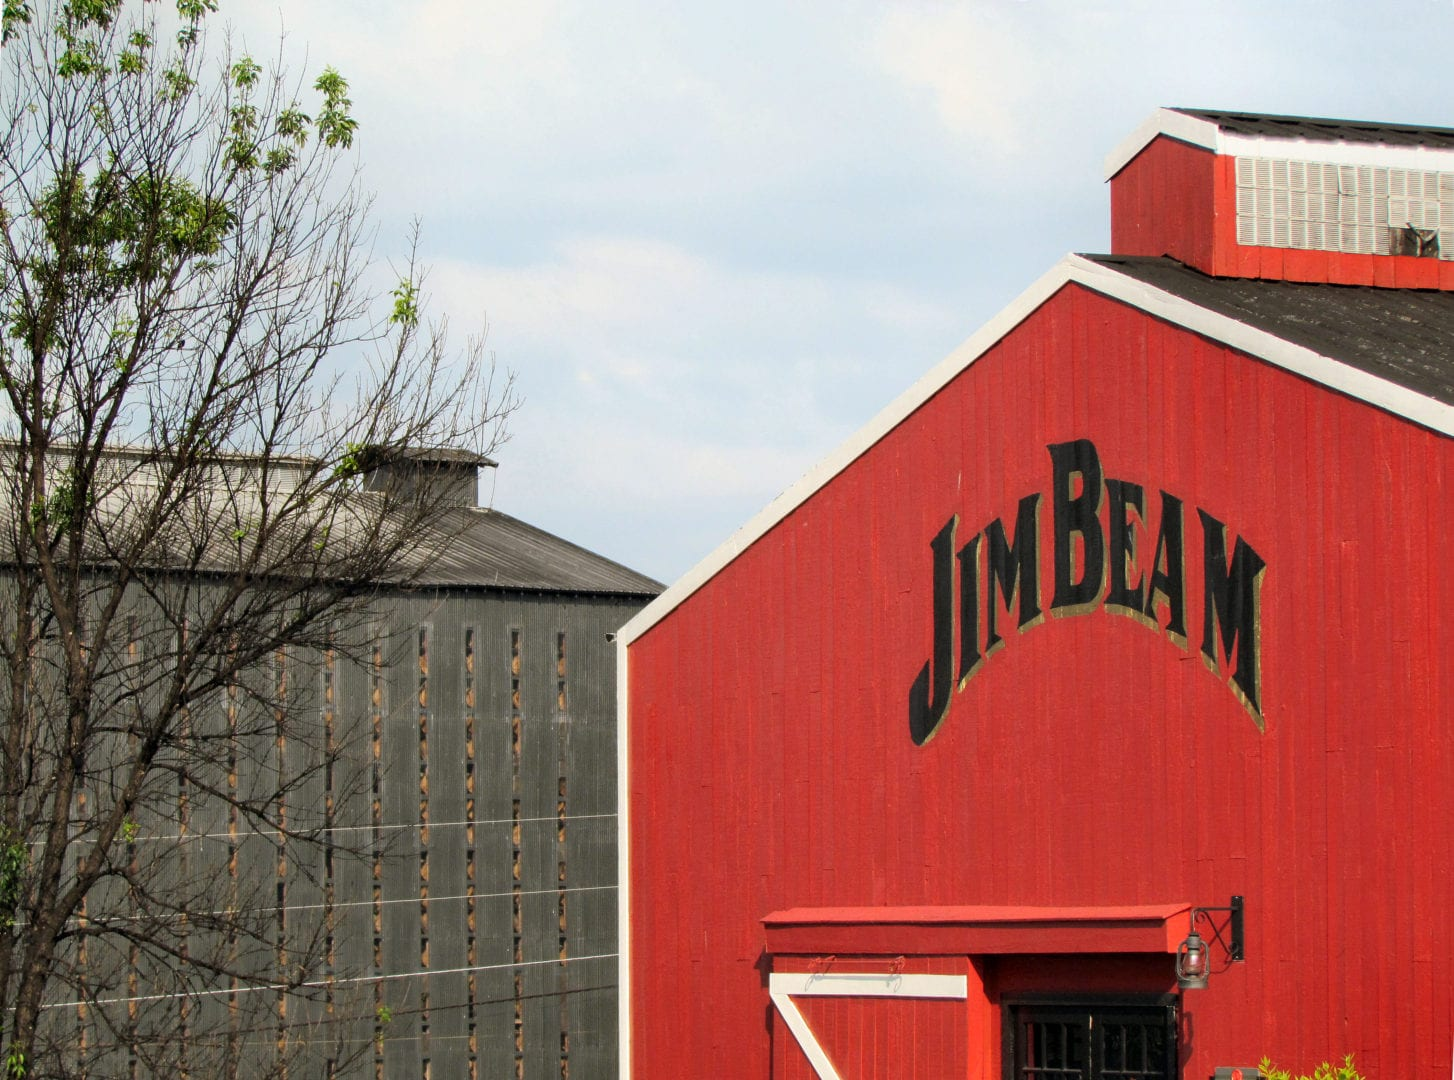 A red Jim Beam warehouse